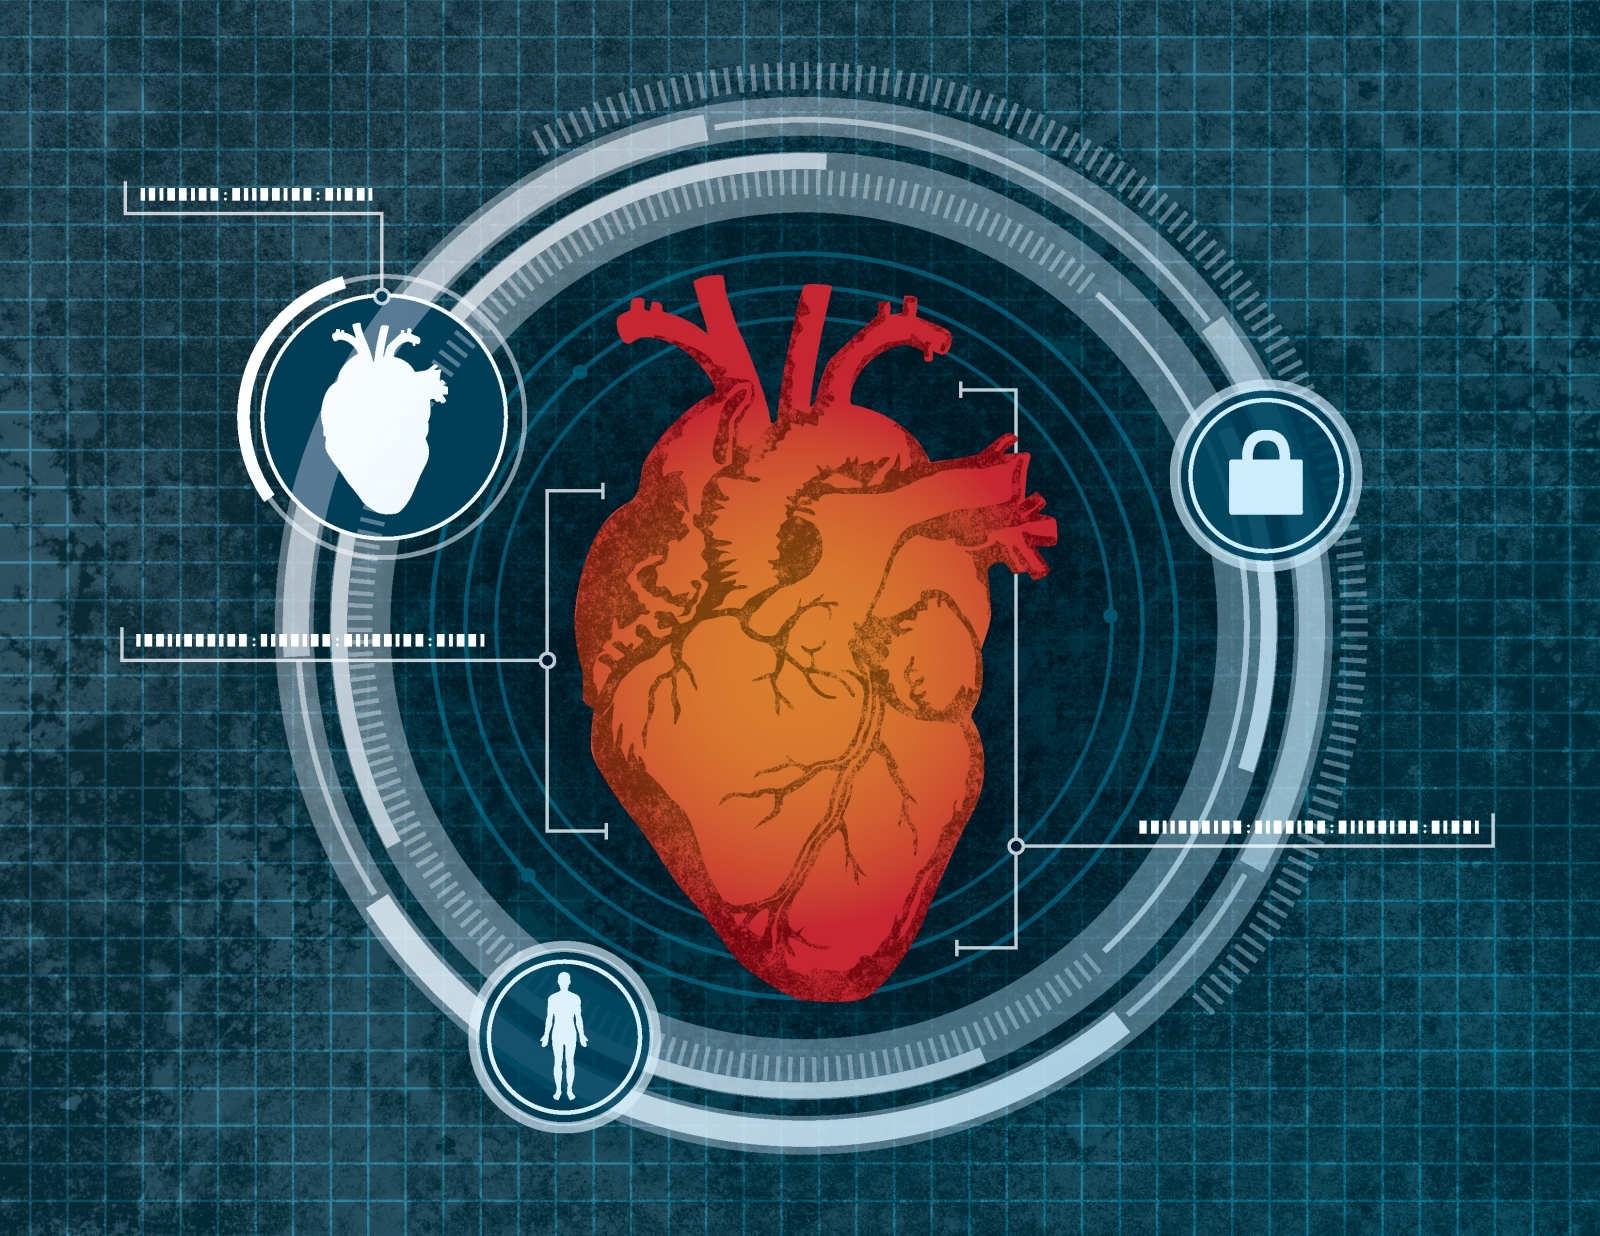 Heart scan biometrics